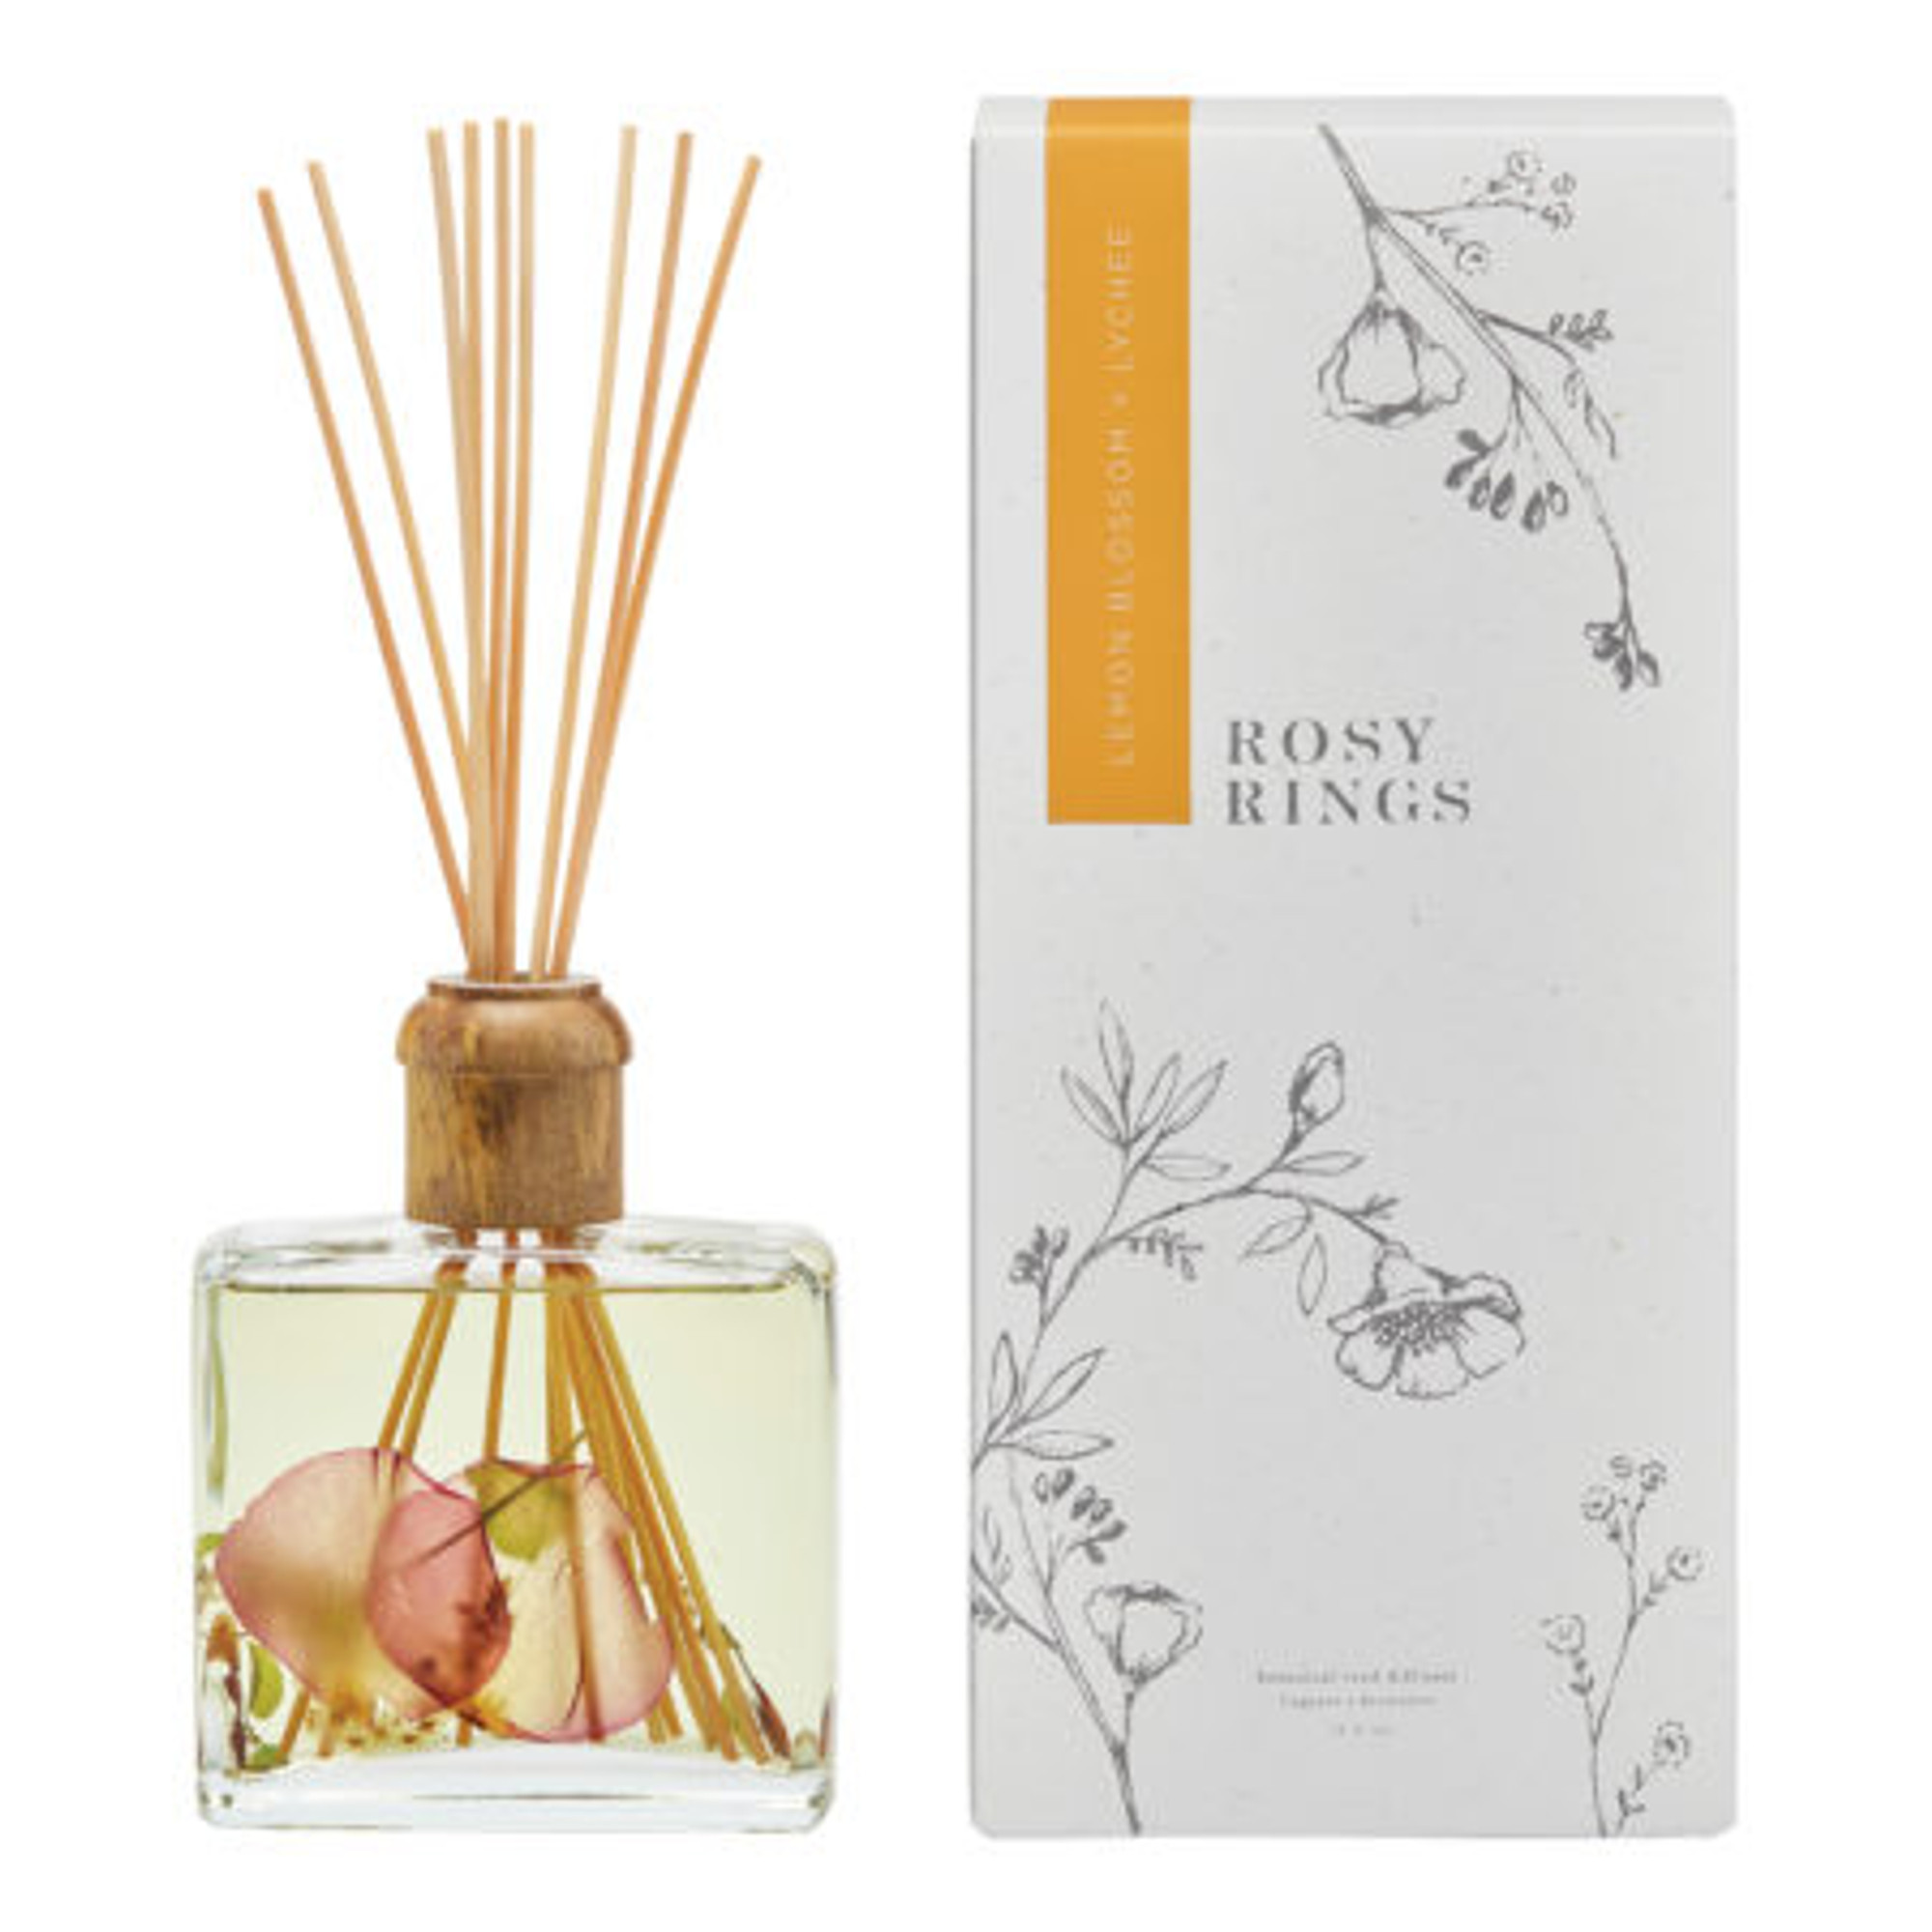 Rosy Rings Botanical Reed Diffuser Hearth And Soul